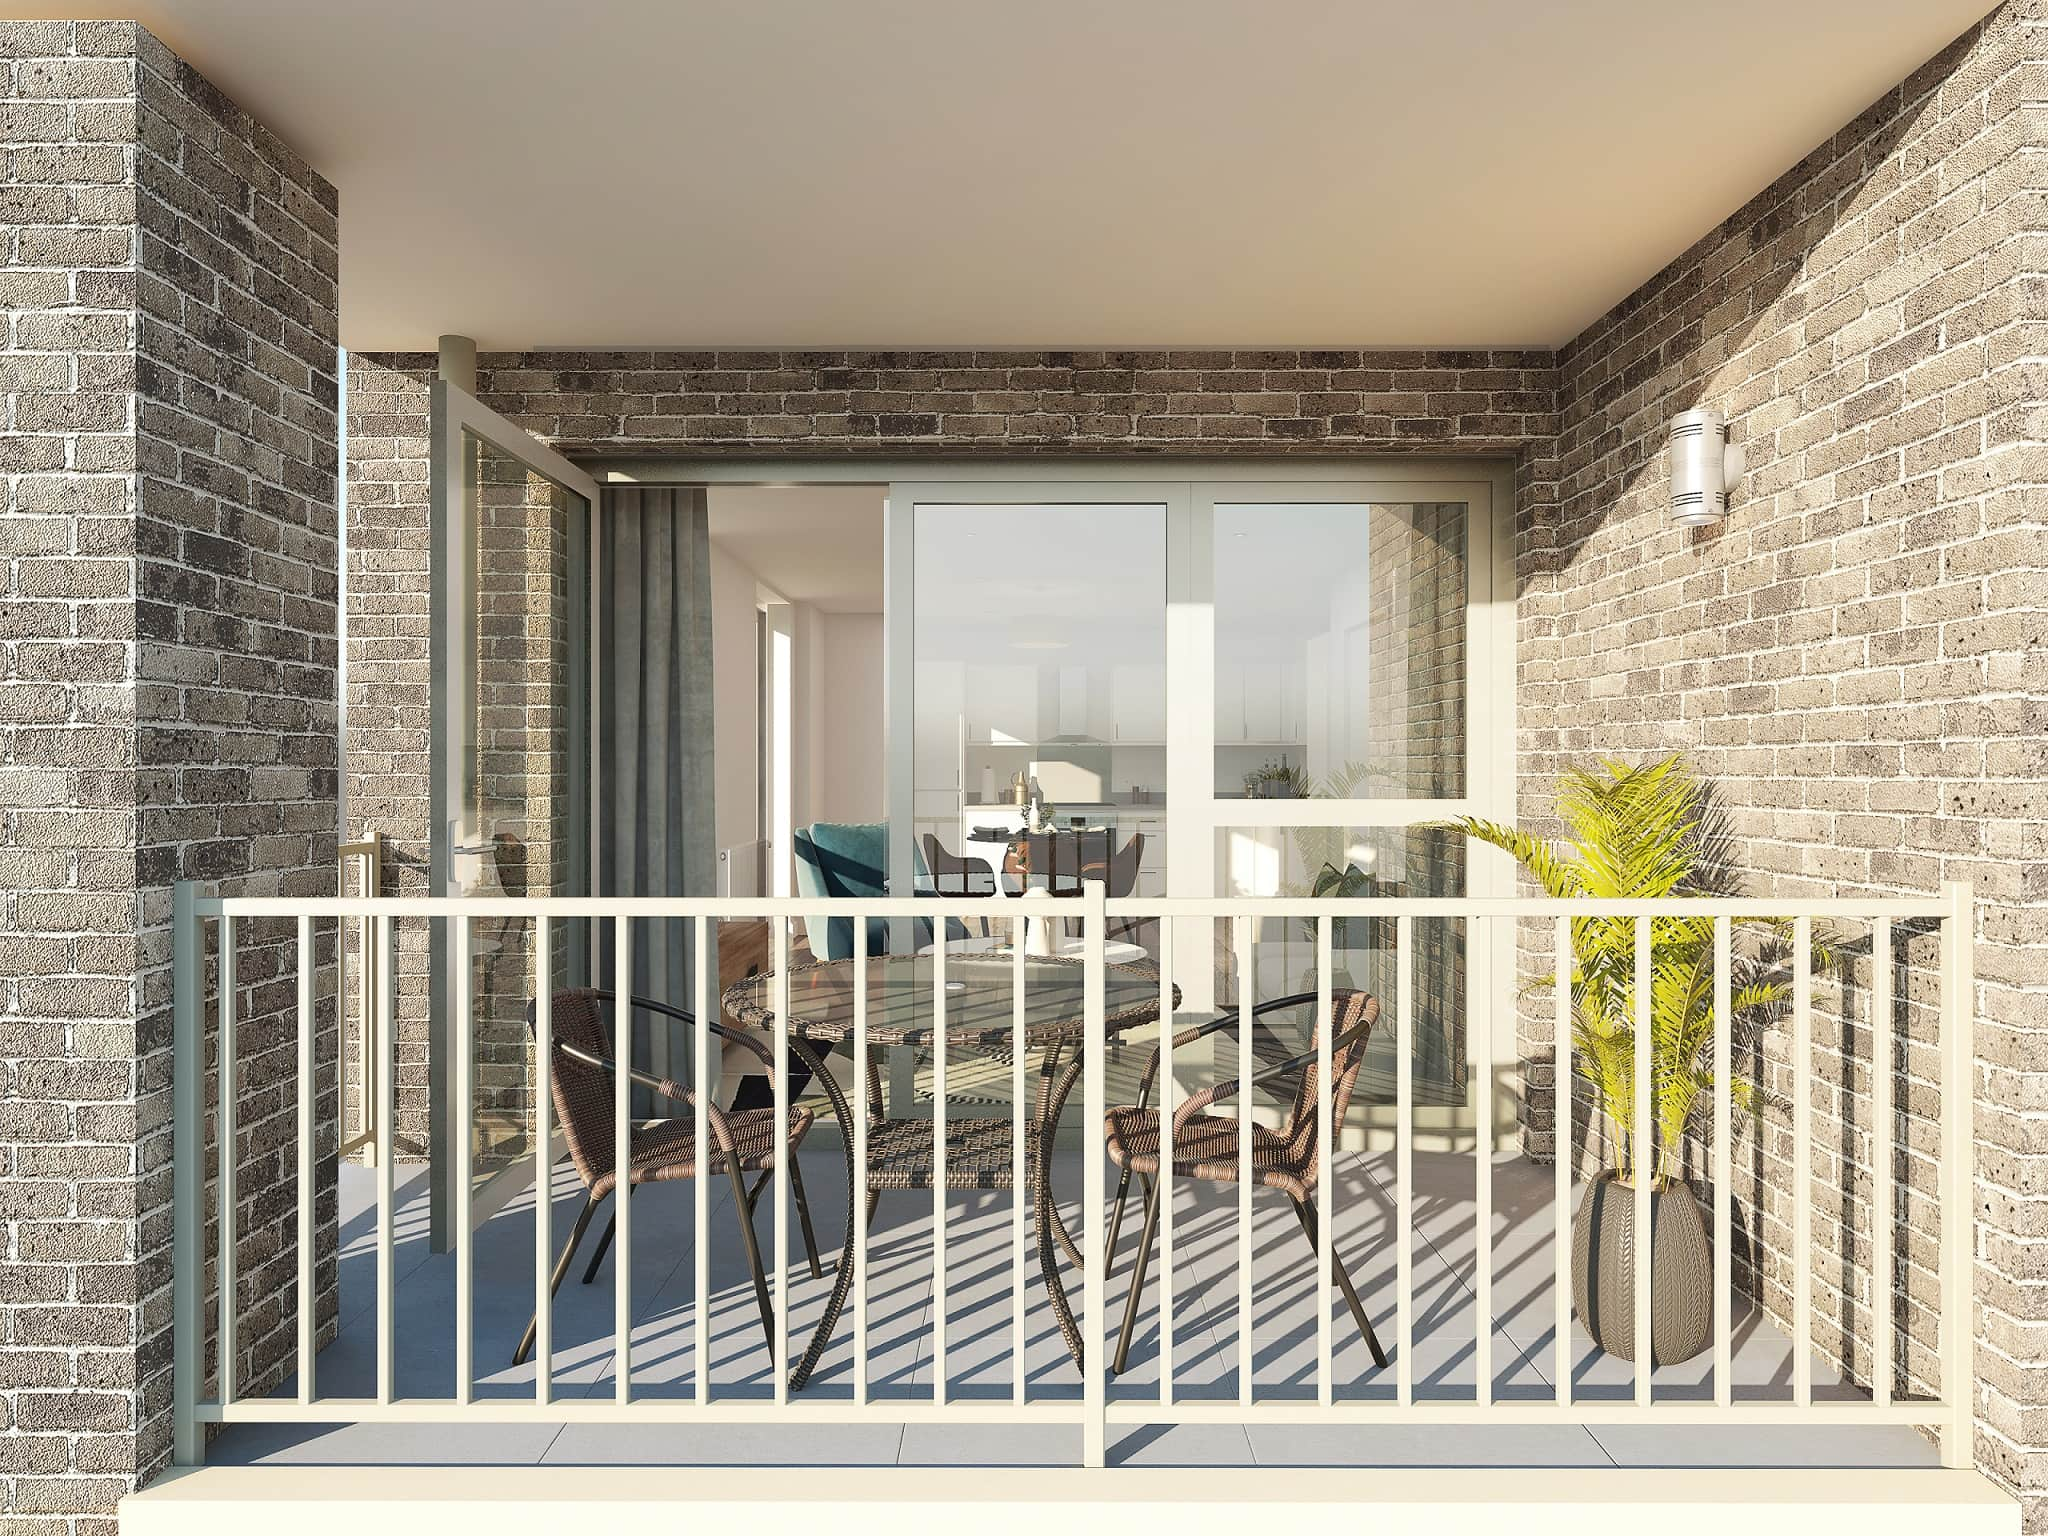 Balcony photography of Catalyst's Newman Place development - Shared Ownership and Help to Buy homes available on Share to Buy